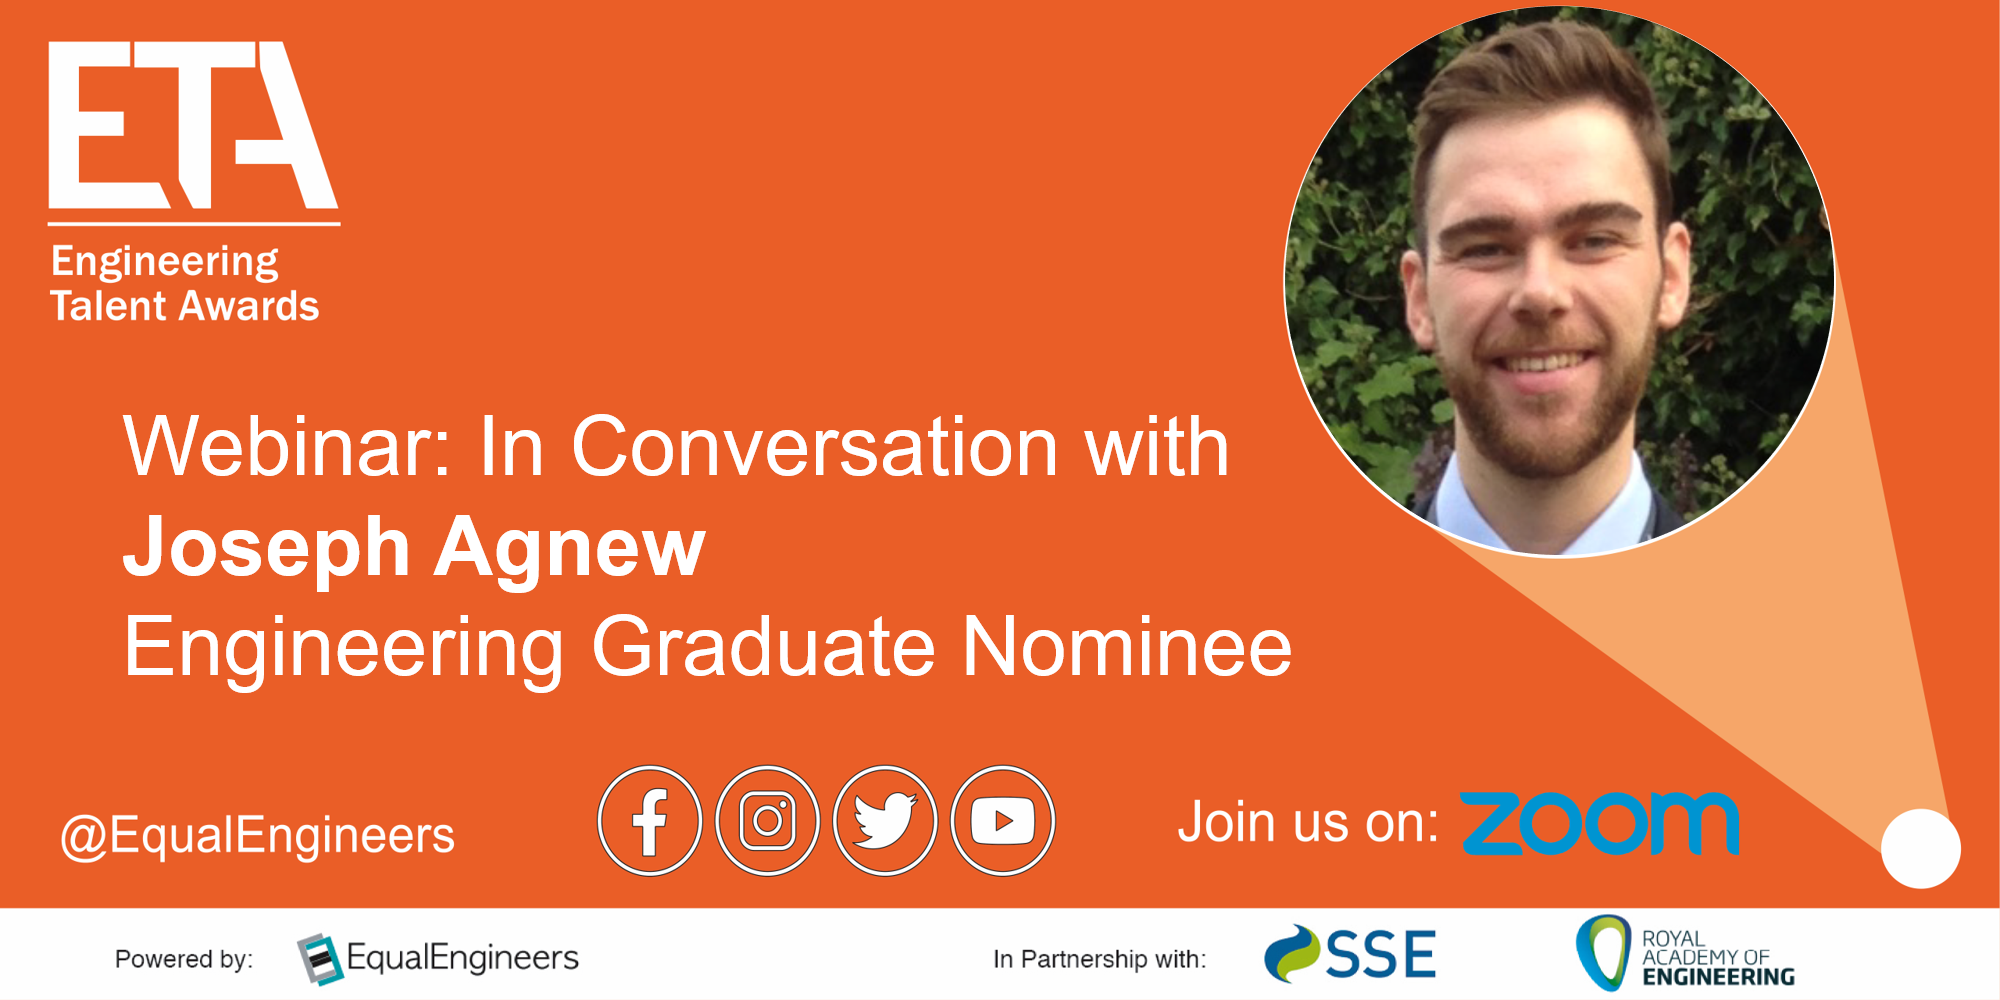 engineering-graduate-nominee-joseph-agnew